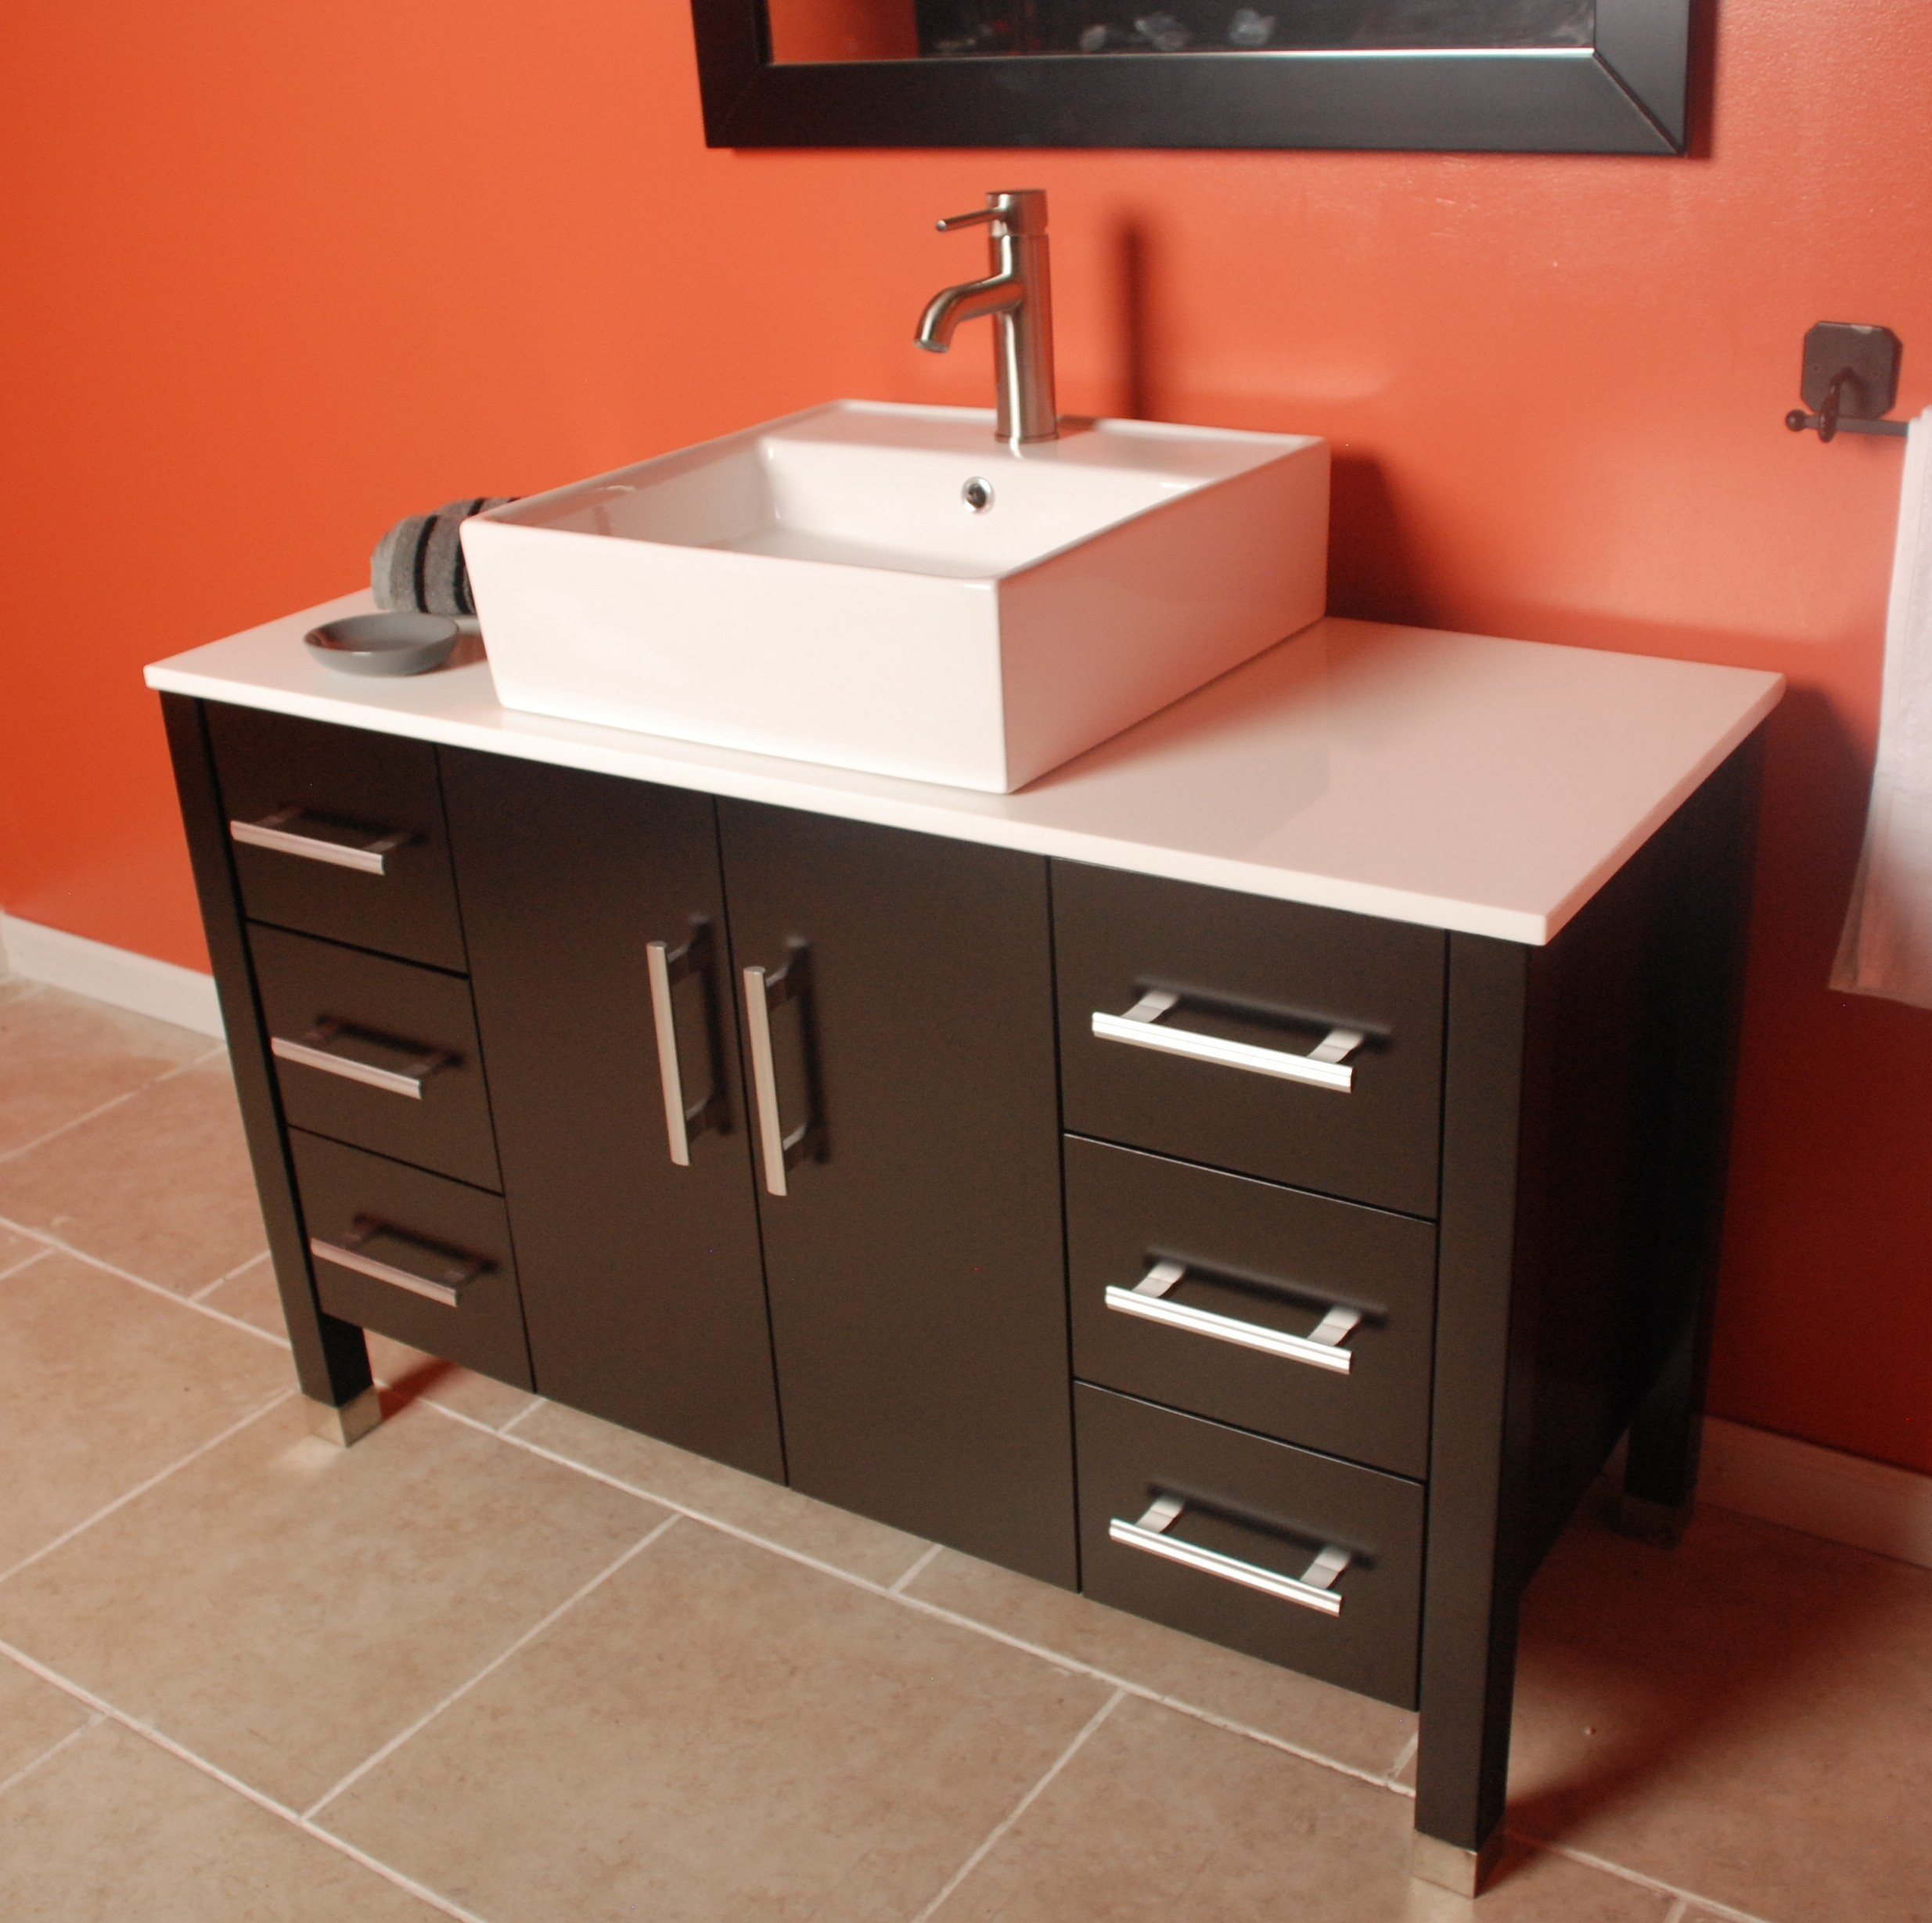 today set inch overstock garden ariel sink grey shipping single left bathroom free home in product offset vanity cambridge